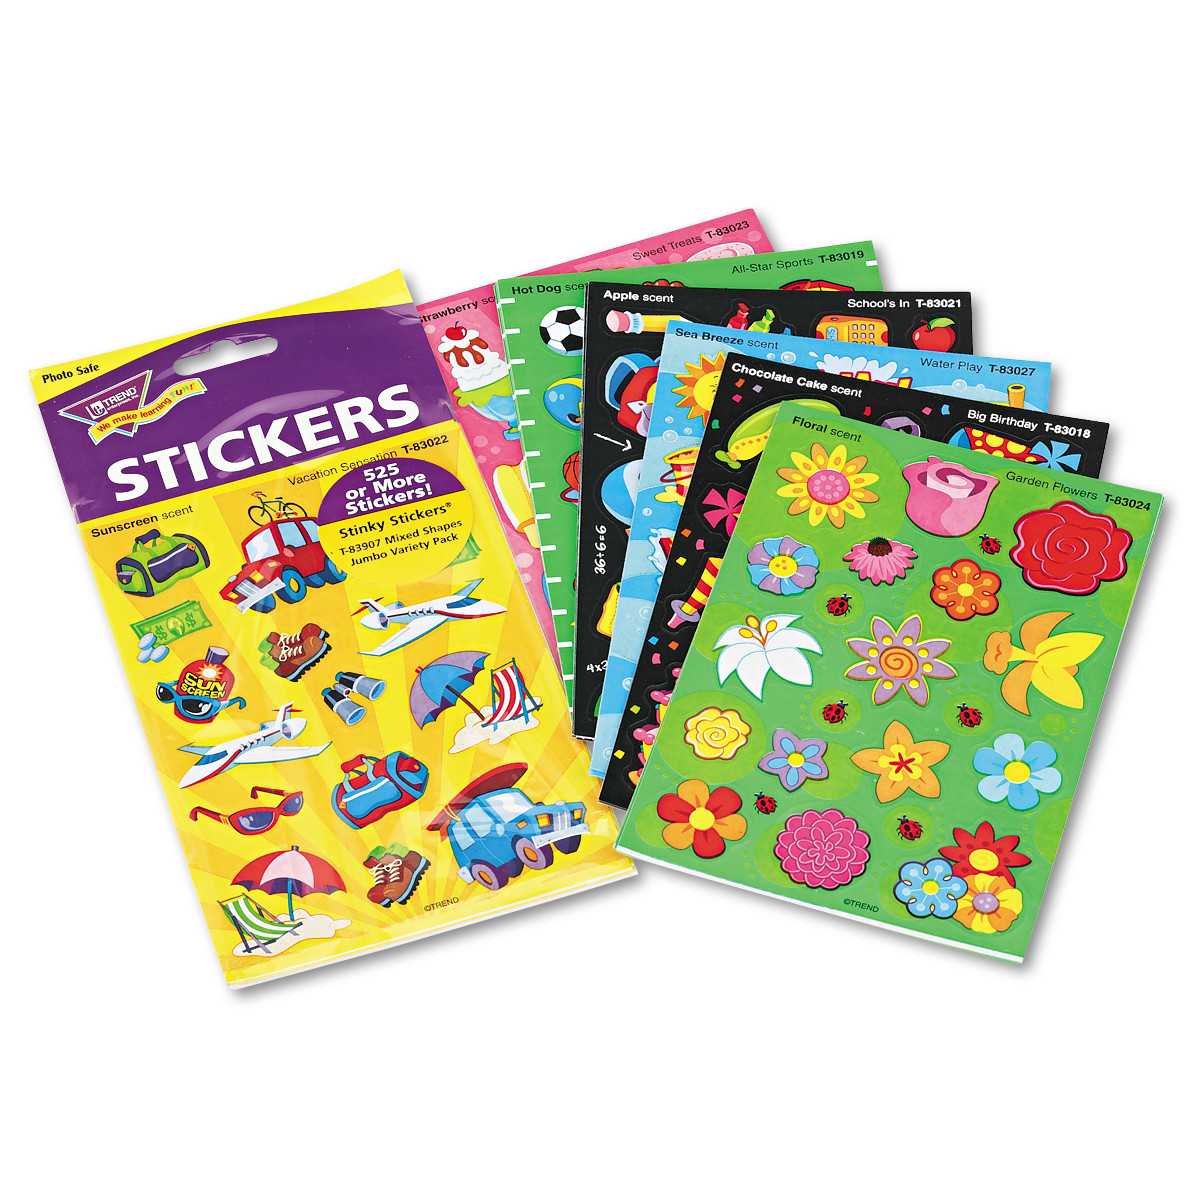 TREND Stinky Stickers Variety Pack, Good Times, 535/Pack -TEPT83907